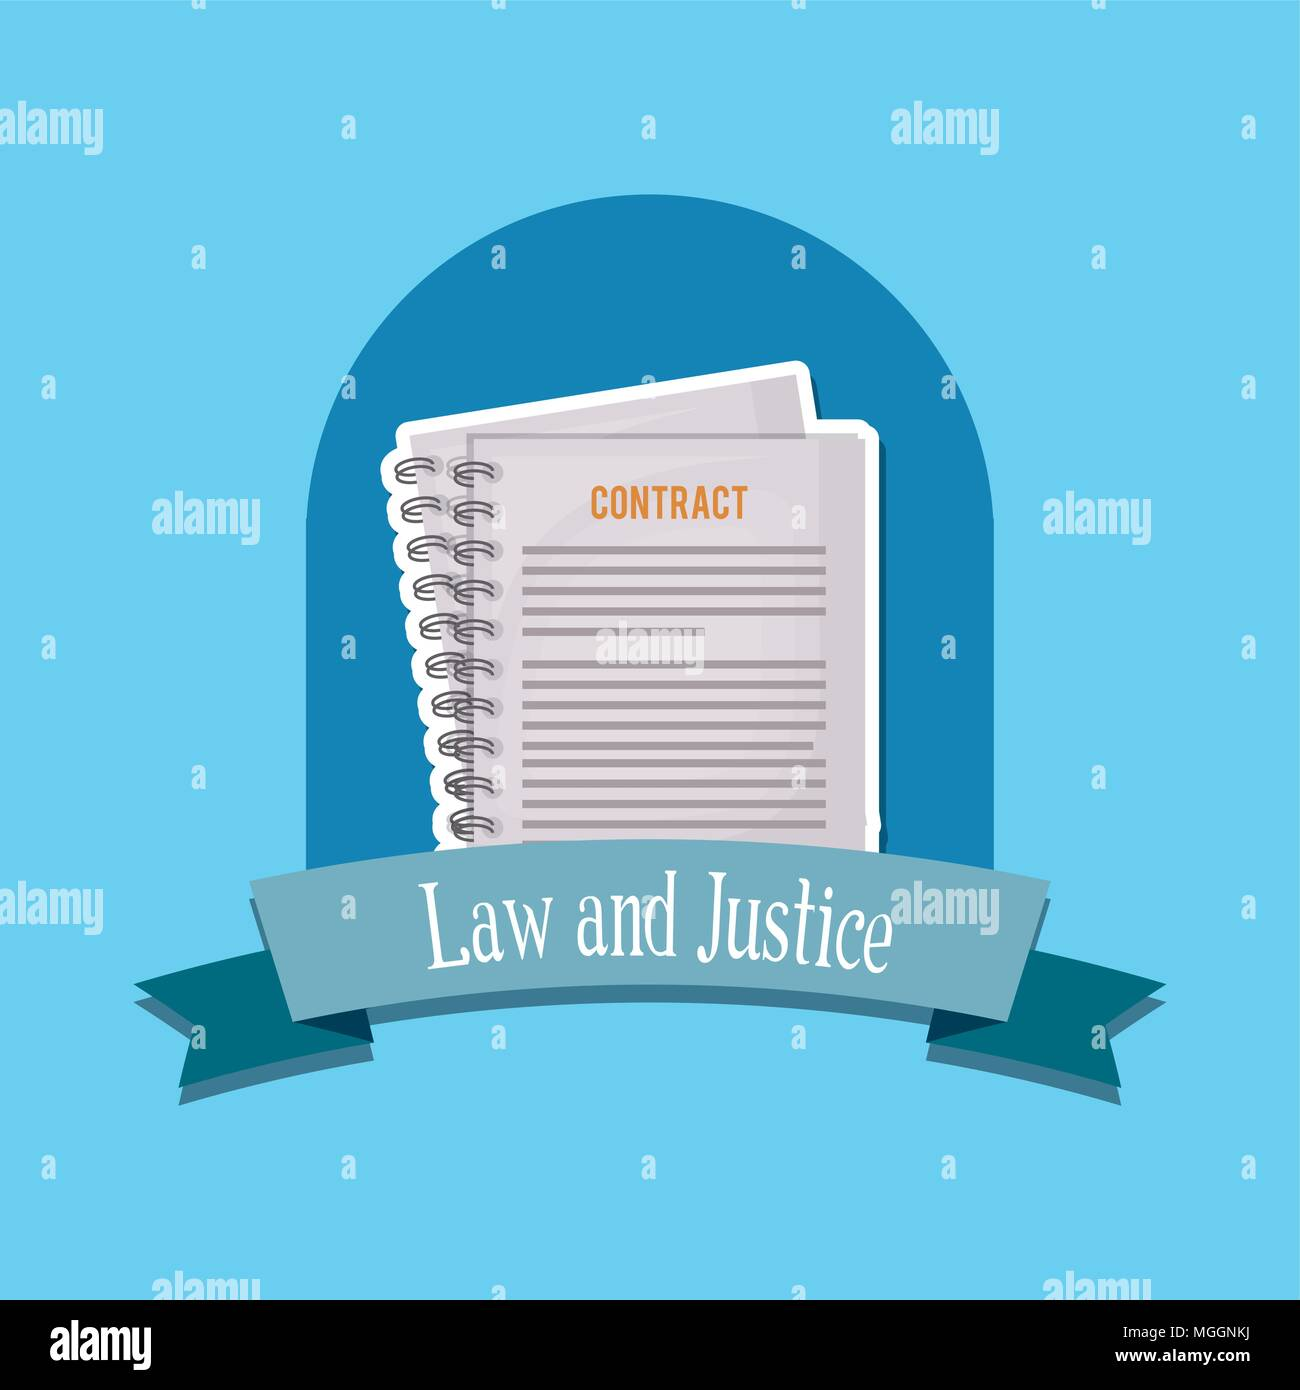 emblem of law and justice concept with contract documents over blue background, colorful design. vector illustraton - Stock Vector